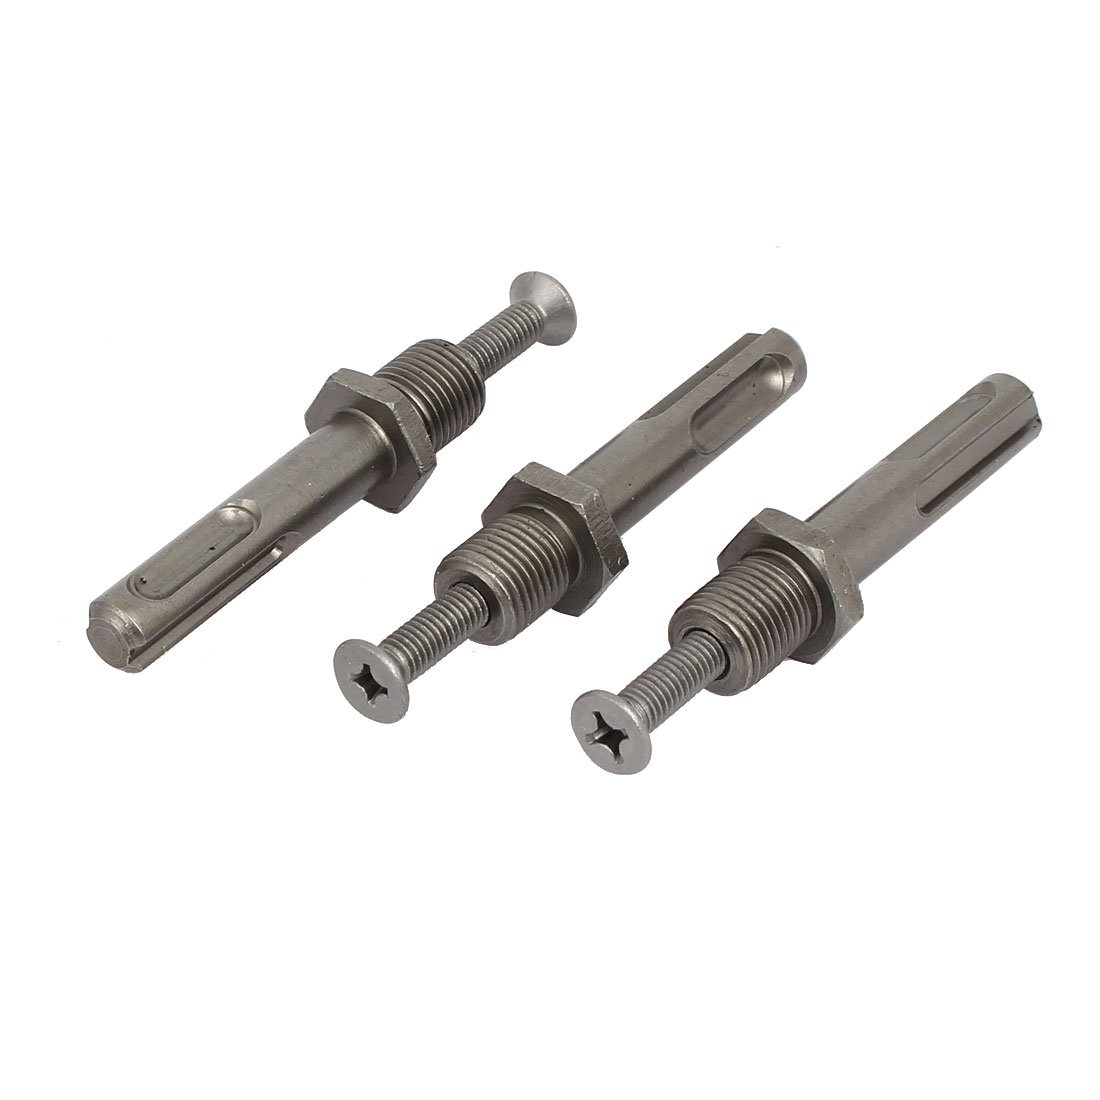 Aexit 12mm Thread Drill Presses Diameter SDS Plus Shank Drill Chuck Adapters Benchtop Drill Presses Connector 3pcs